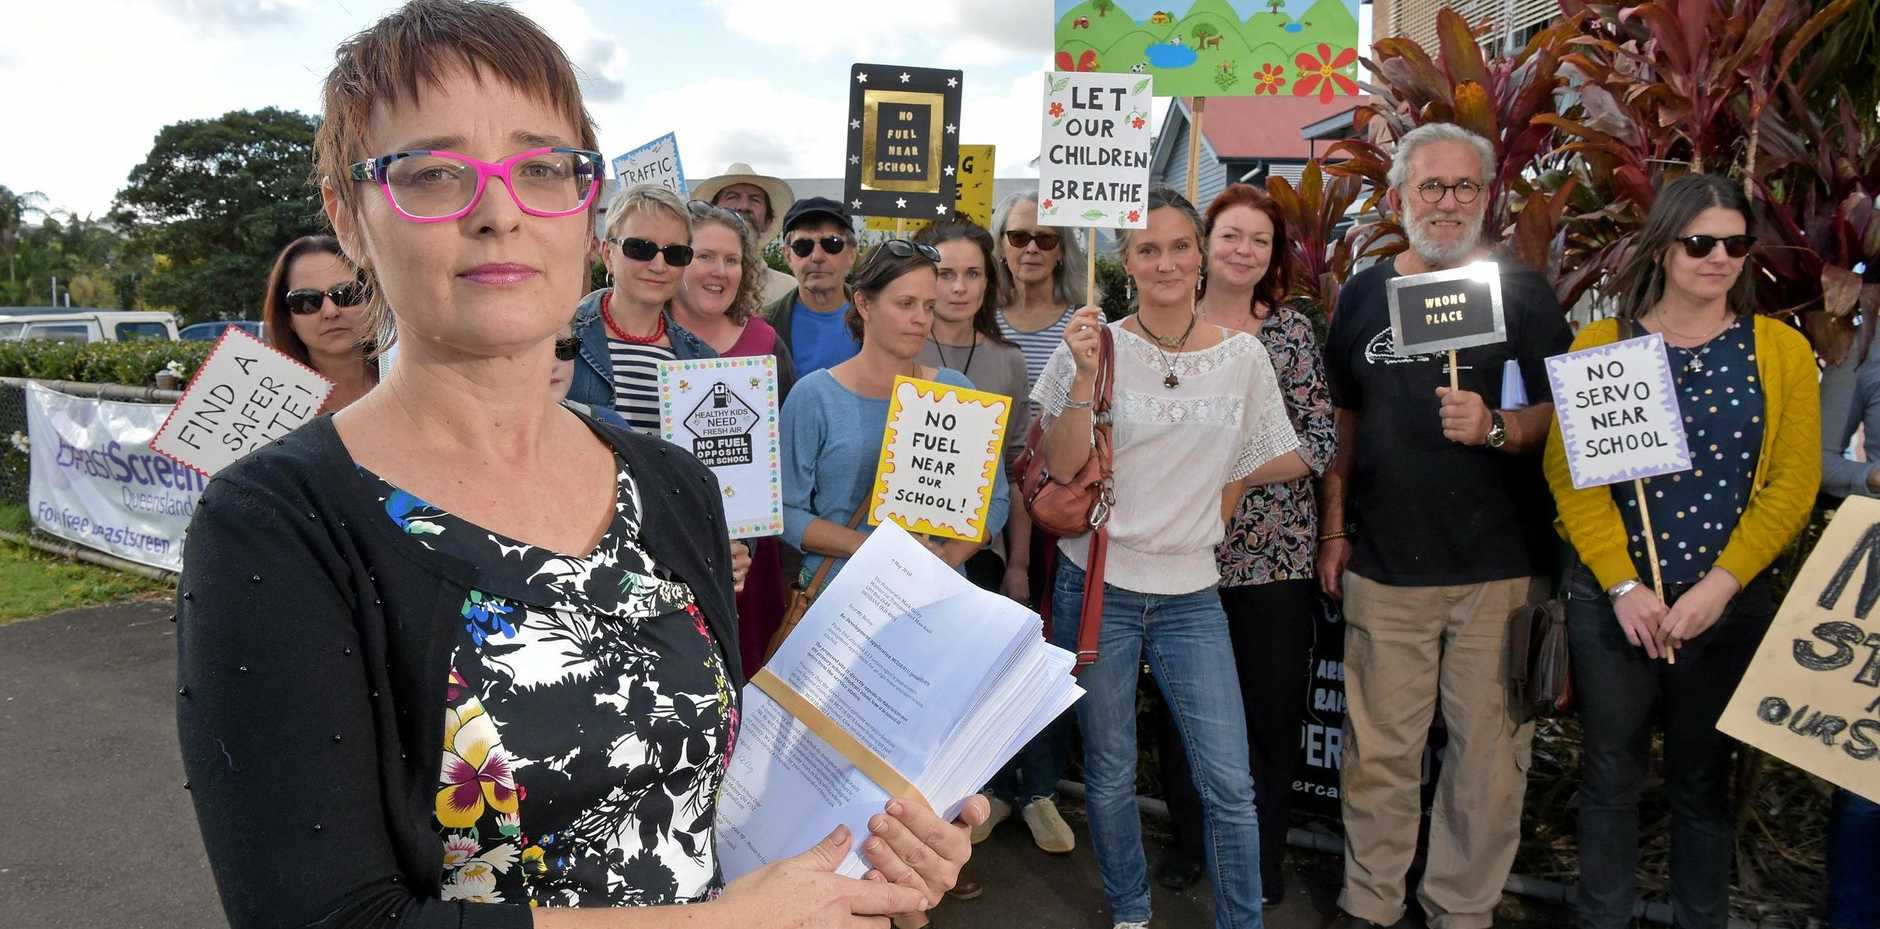 Members of the Maleny community gather to protest the proposed service station opposite the local primary school with event organiser Angie Kelly.